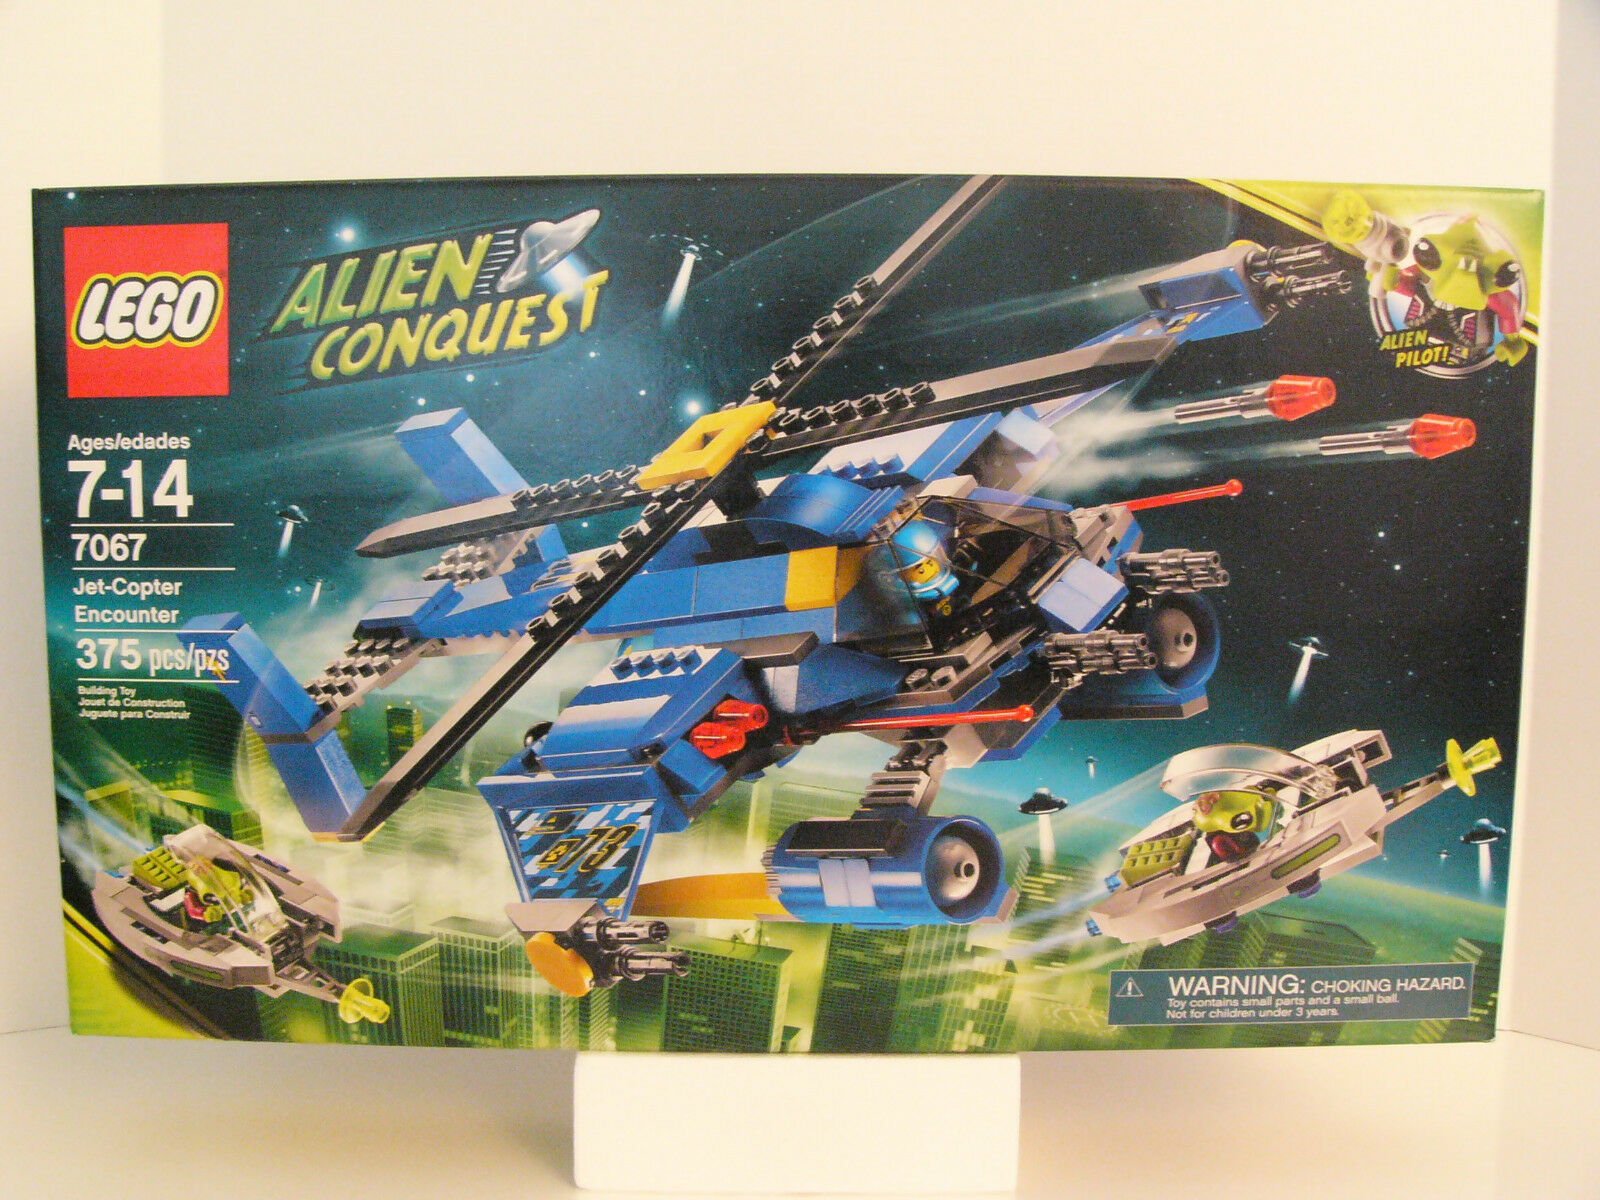 LEGO 7067,Jet-Copter 7067,Jet-Copter 7067,Jet-Copter Encounter, NEW and Sealed Box Set acc79d